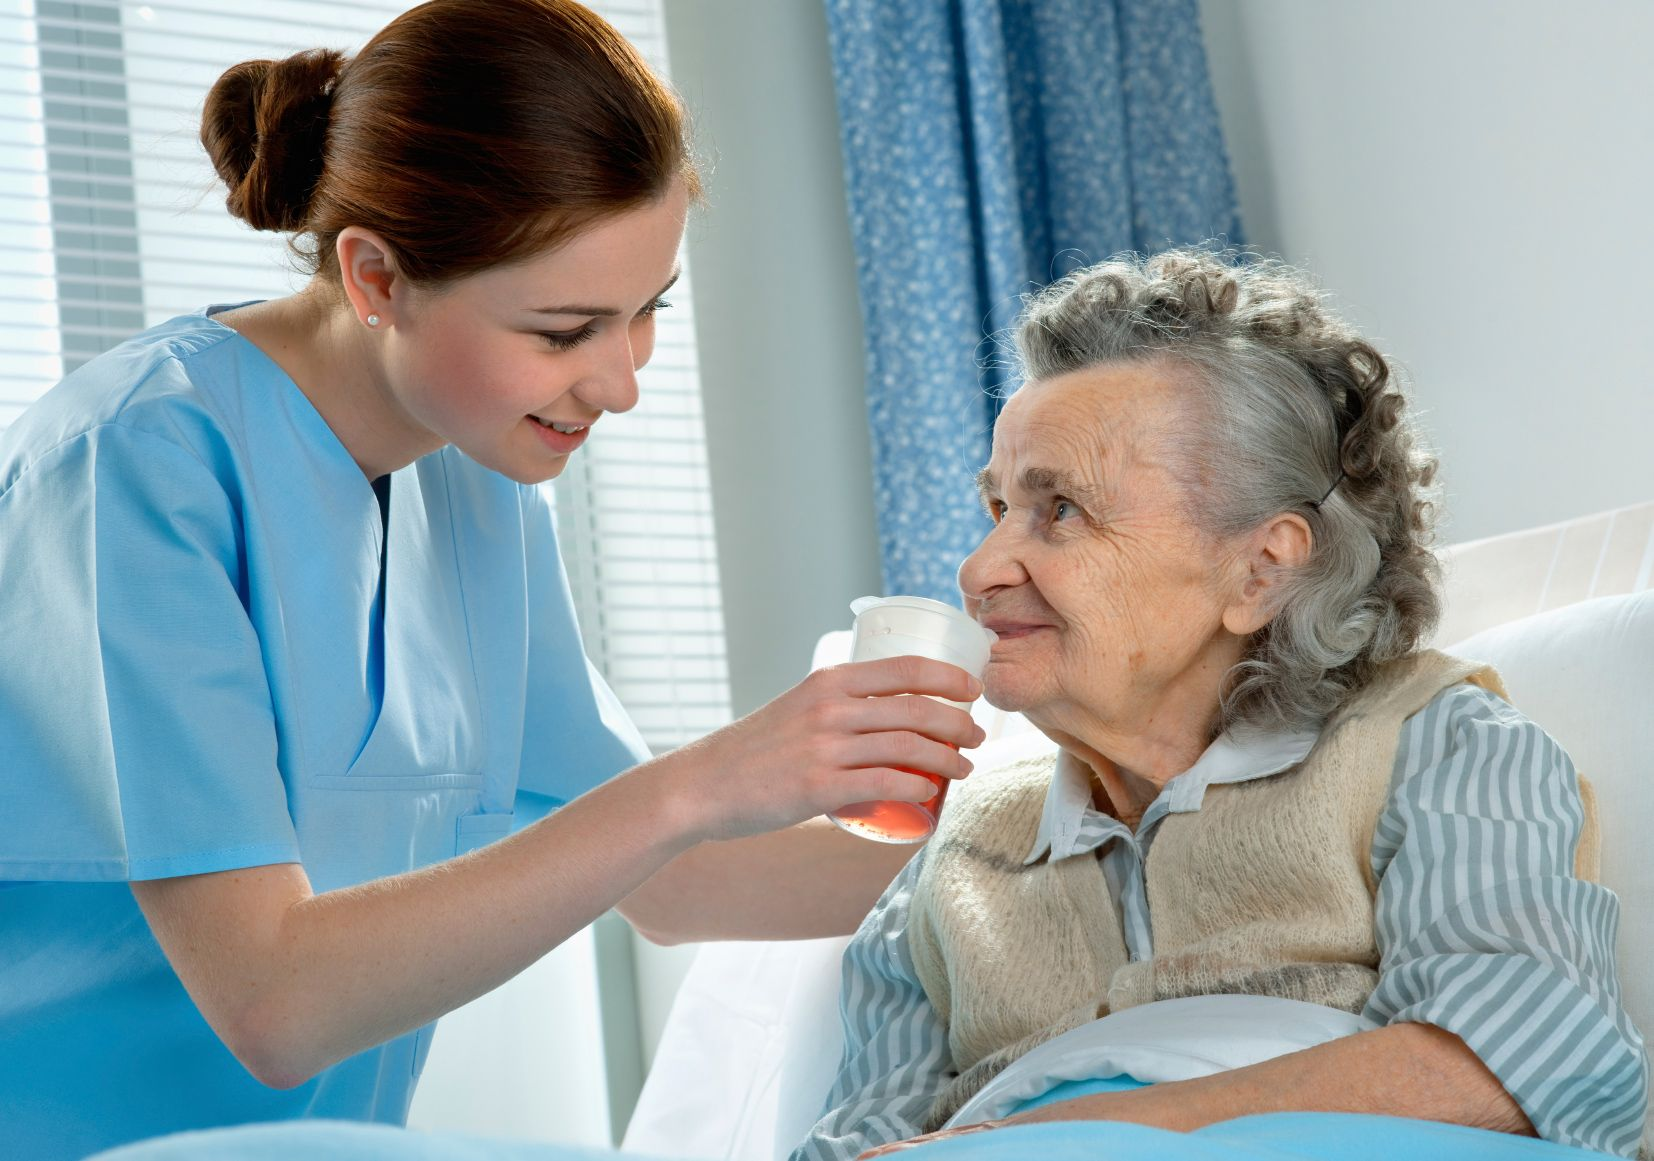 Pin By Vr Carers On Home Care Services Home Health Aide Home Care Home Health